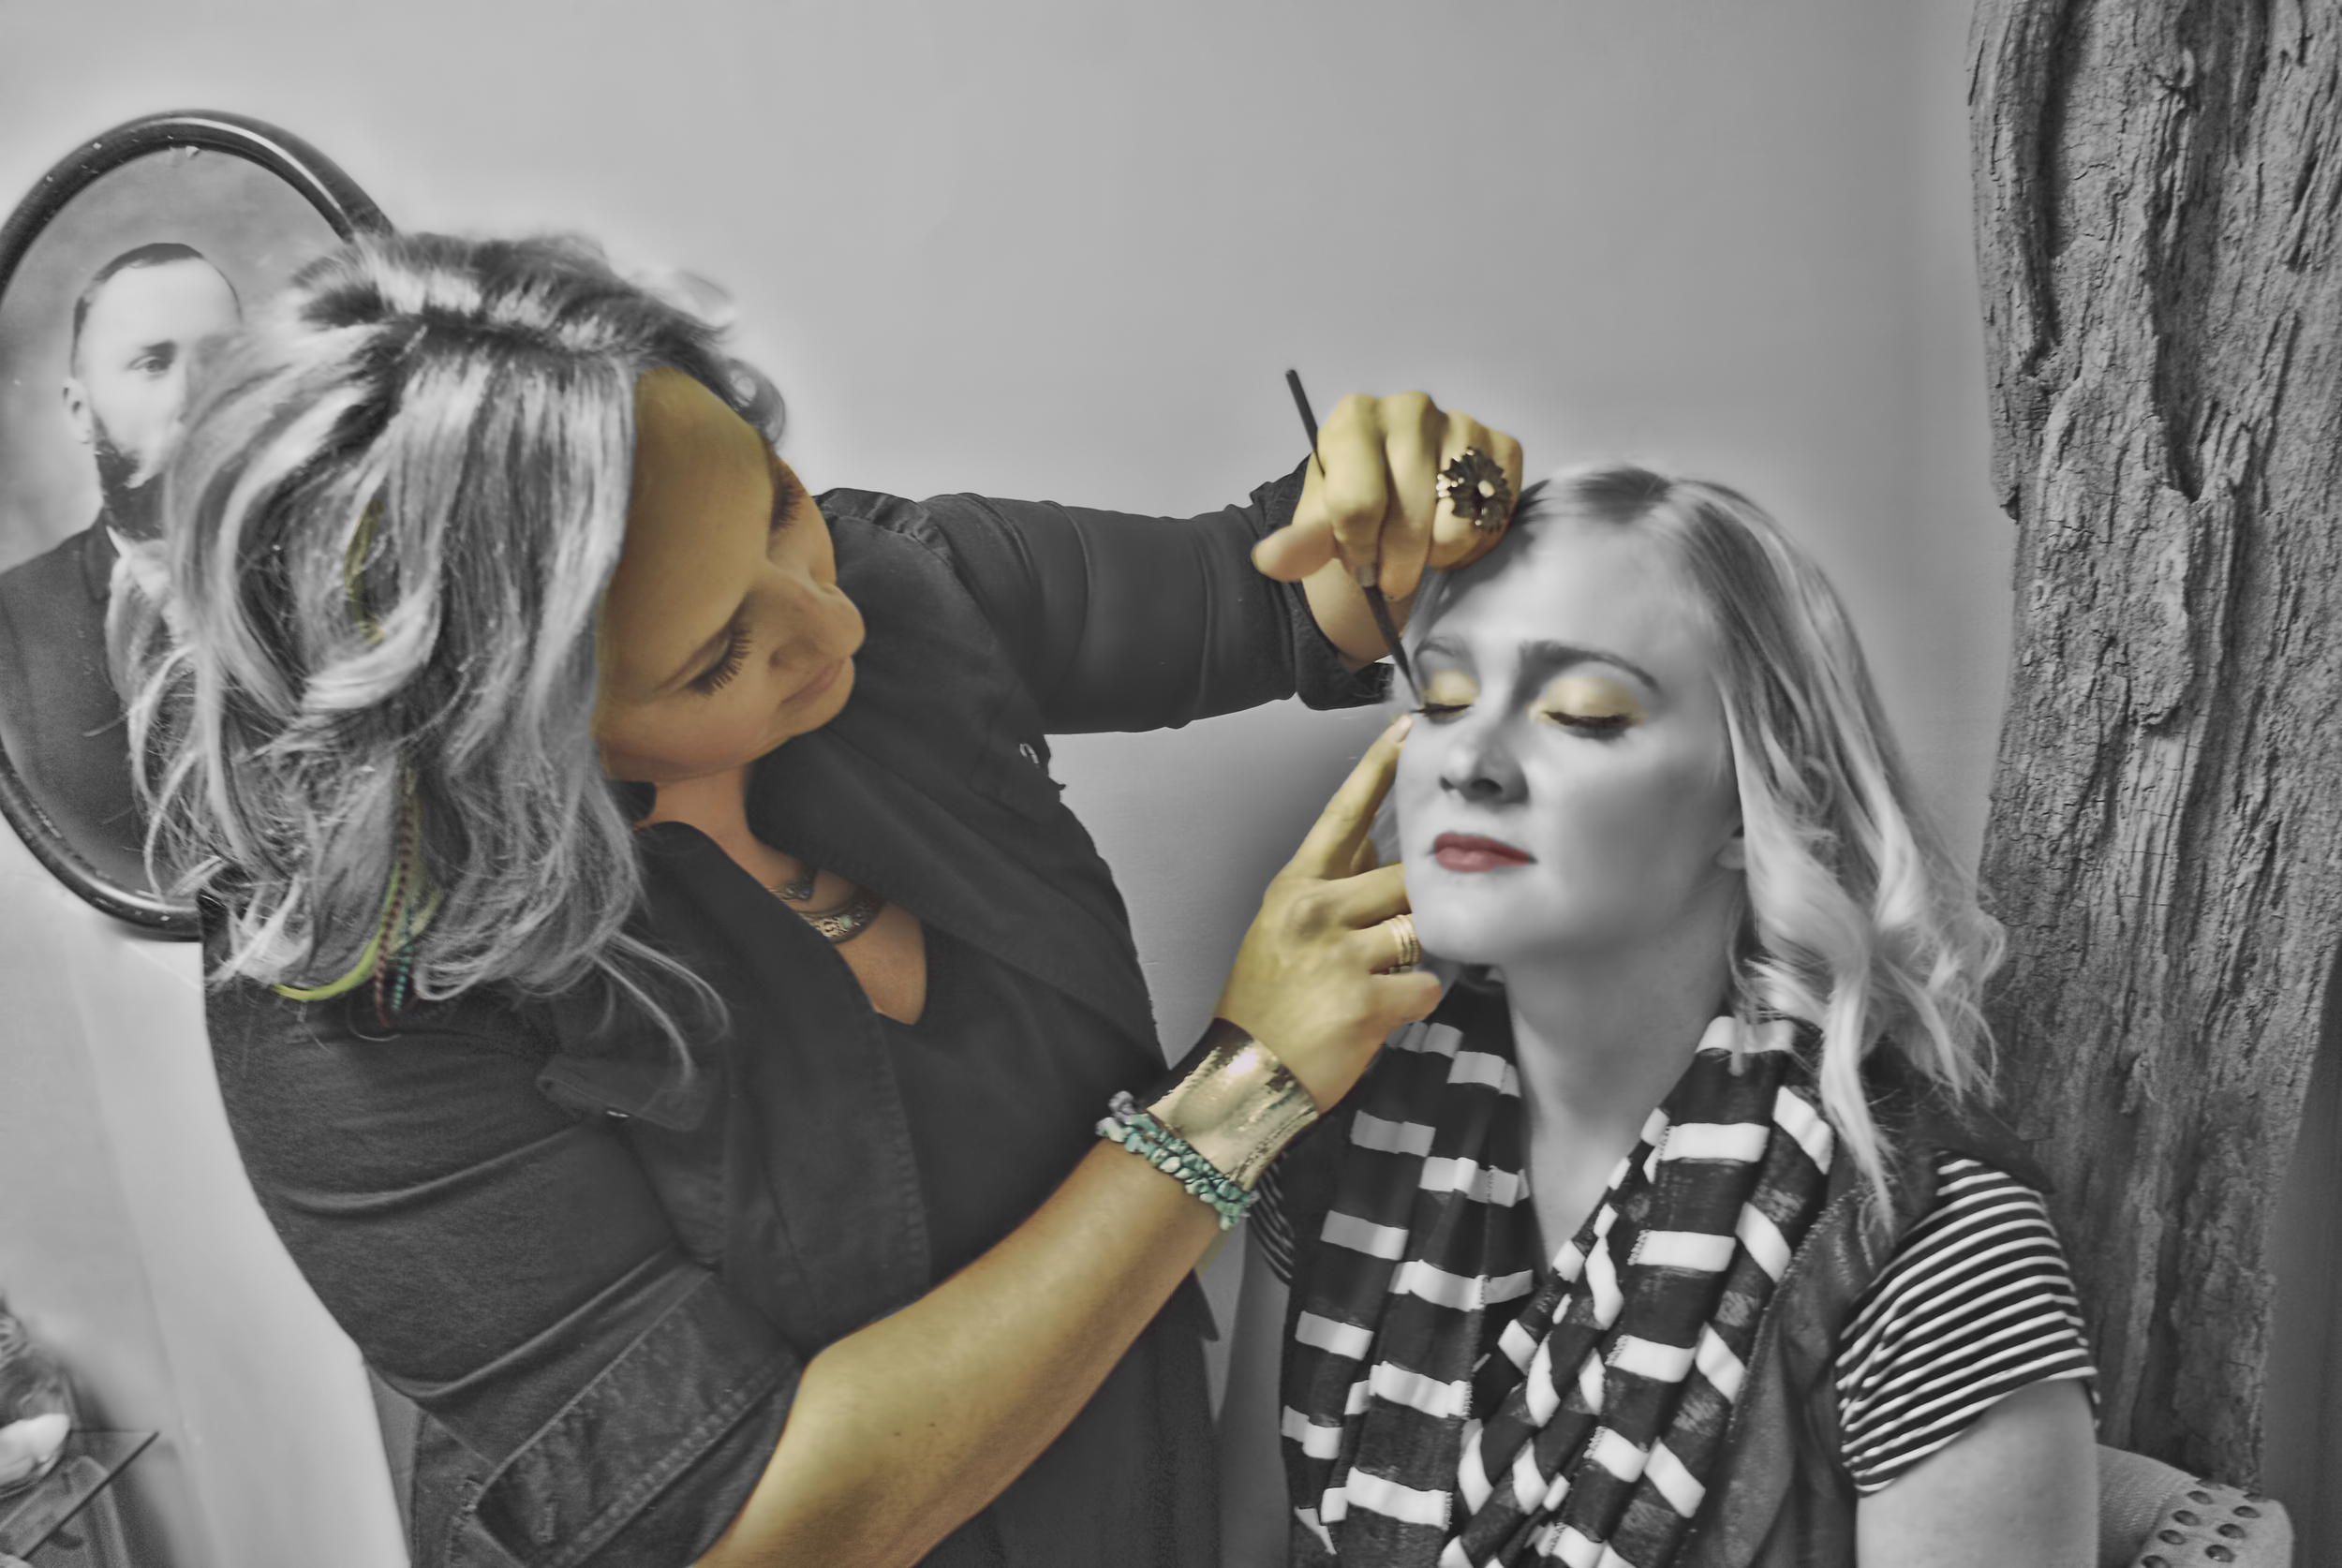 """Bring them to life with a little makeup - """"Makeup brings much needed color and excitement into our world. Makeup is art, and a little makeup never hurt anyone. A wise woman once said, 'A girl should be two things...classy, and fabulous.'""""   -Coco Chanel"""